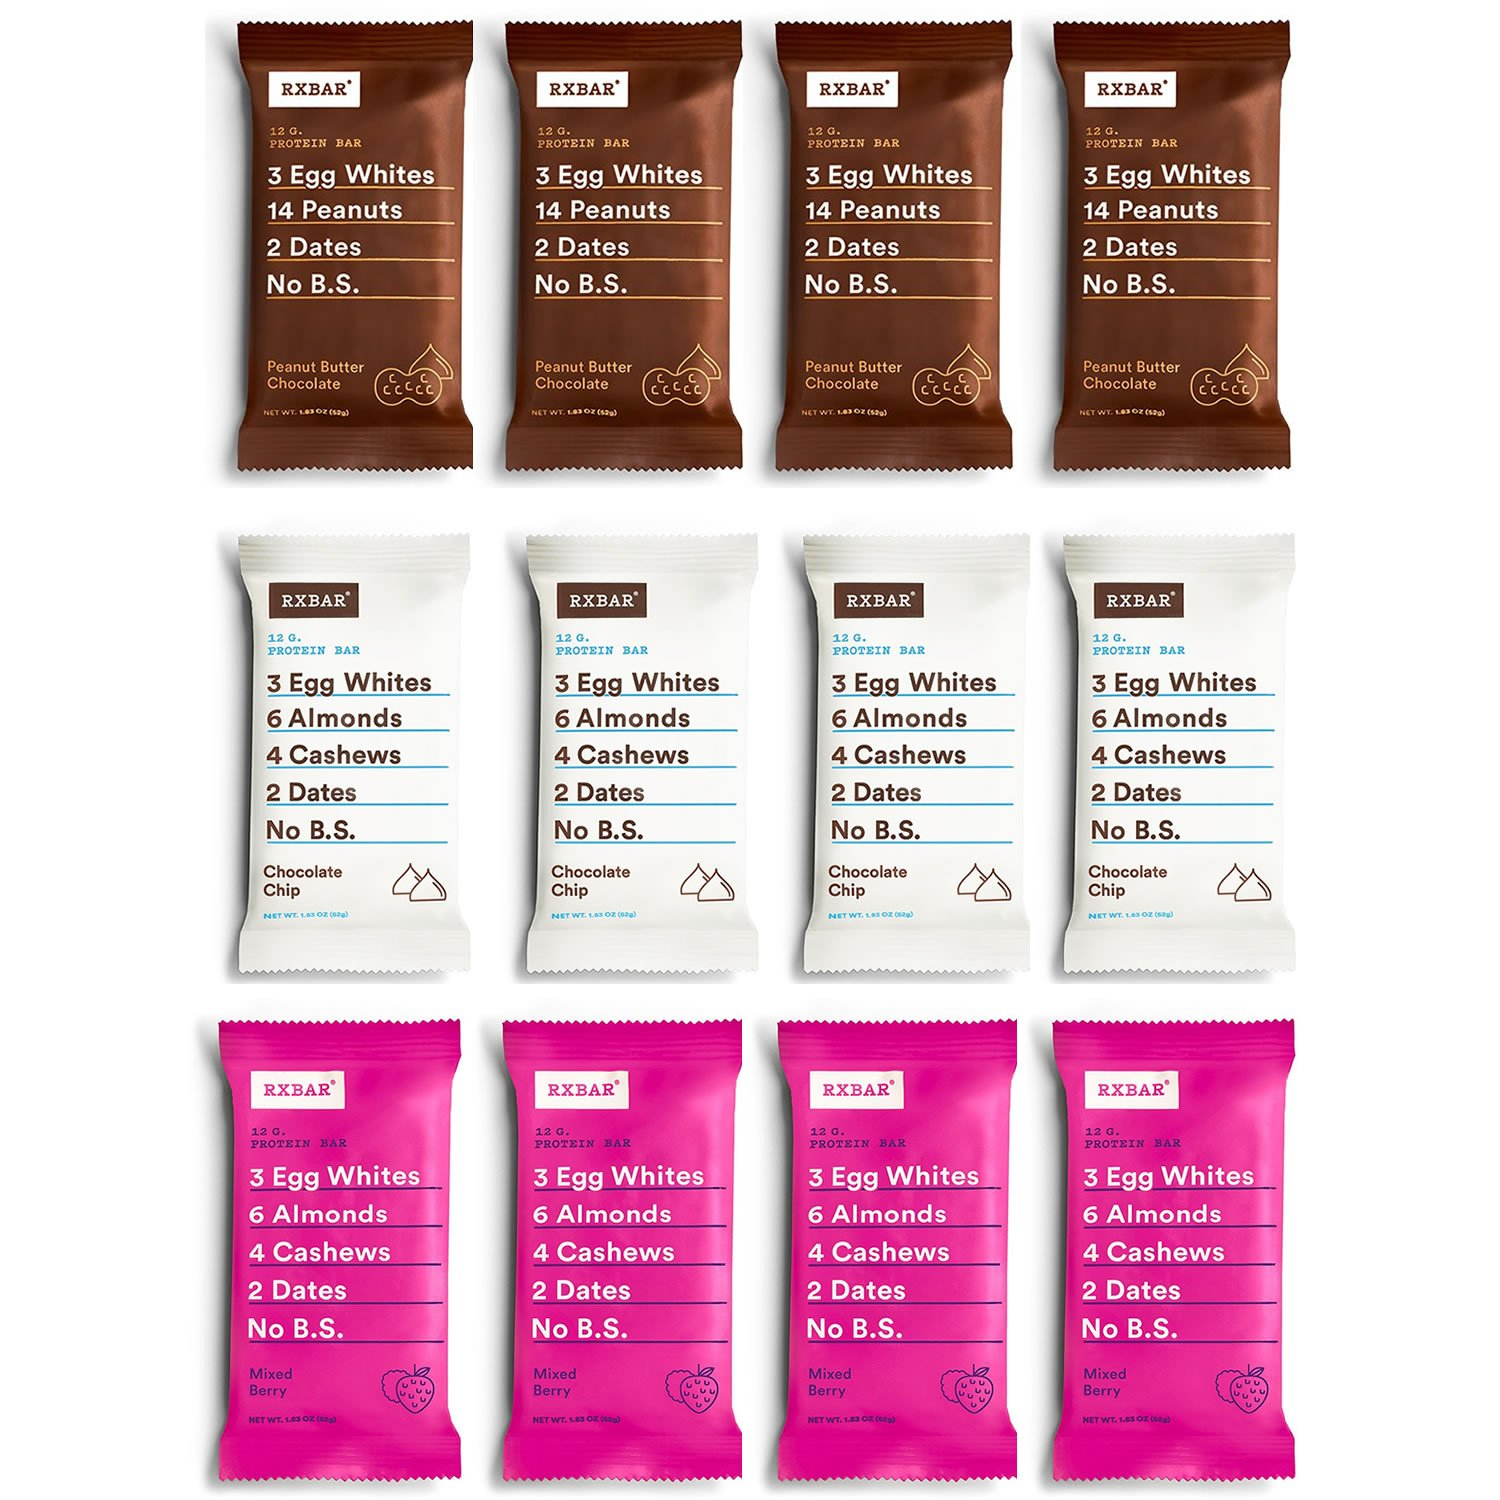 RX Bar New Flavor Variety Pack | Chocolate Peanut Butter, Mixed Berry, Chocolate Chip | 12 Bars